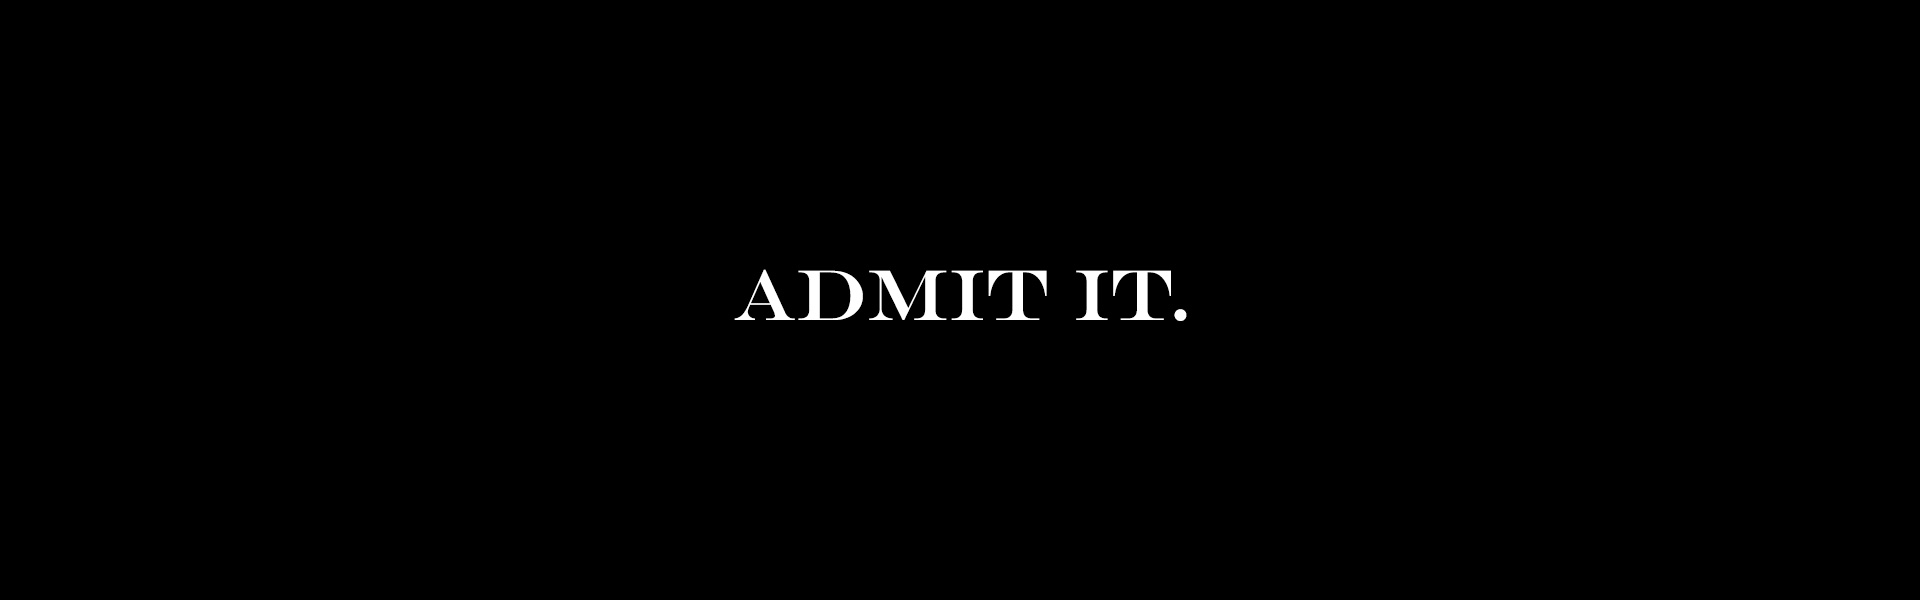 https://mixing.studio11chicago.com/wp-content/uploads/2014/02/ADMIT-IT.jpg